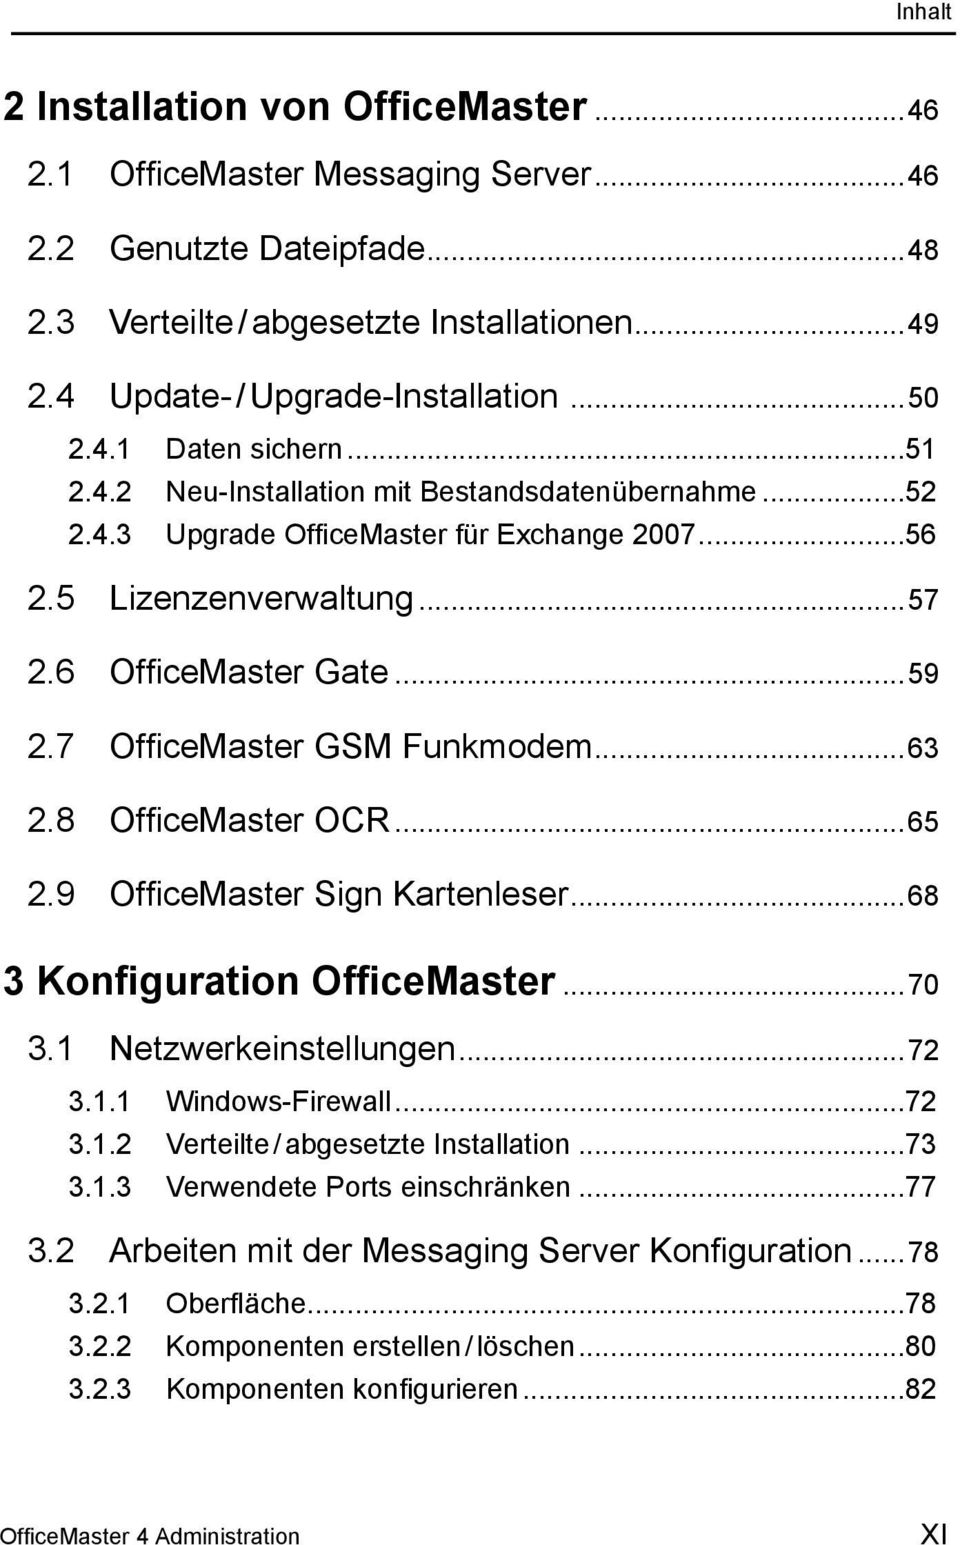 7 OfficeMaster GSM Funkmodem...63 2.8 OfficeMaster OCR...65 2.9 OfficeMaster Sign Kartenleser...68 3 Konfiguration OfficeMaster...70 3.1 Netzwerkeinstellungen...72 3.1.1 Windows-Firewall...72 3.1.2 Verteilte / abgesetzte Installation.